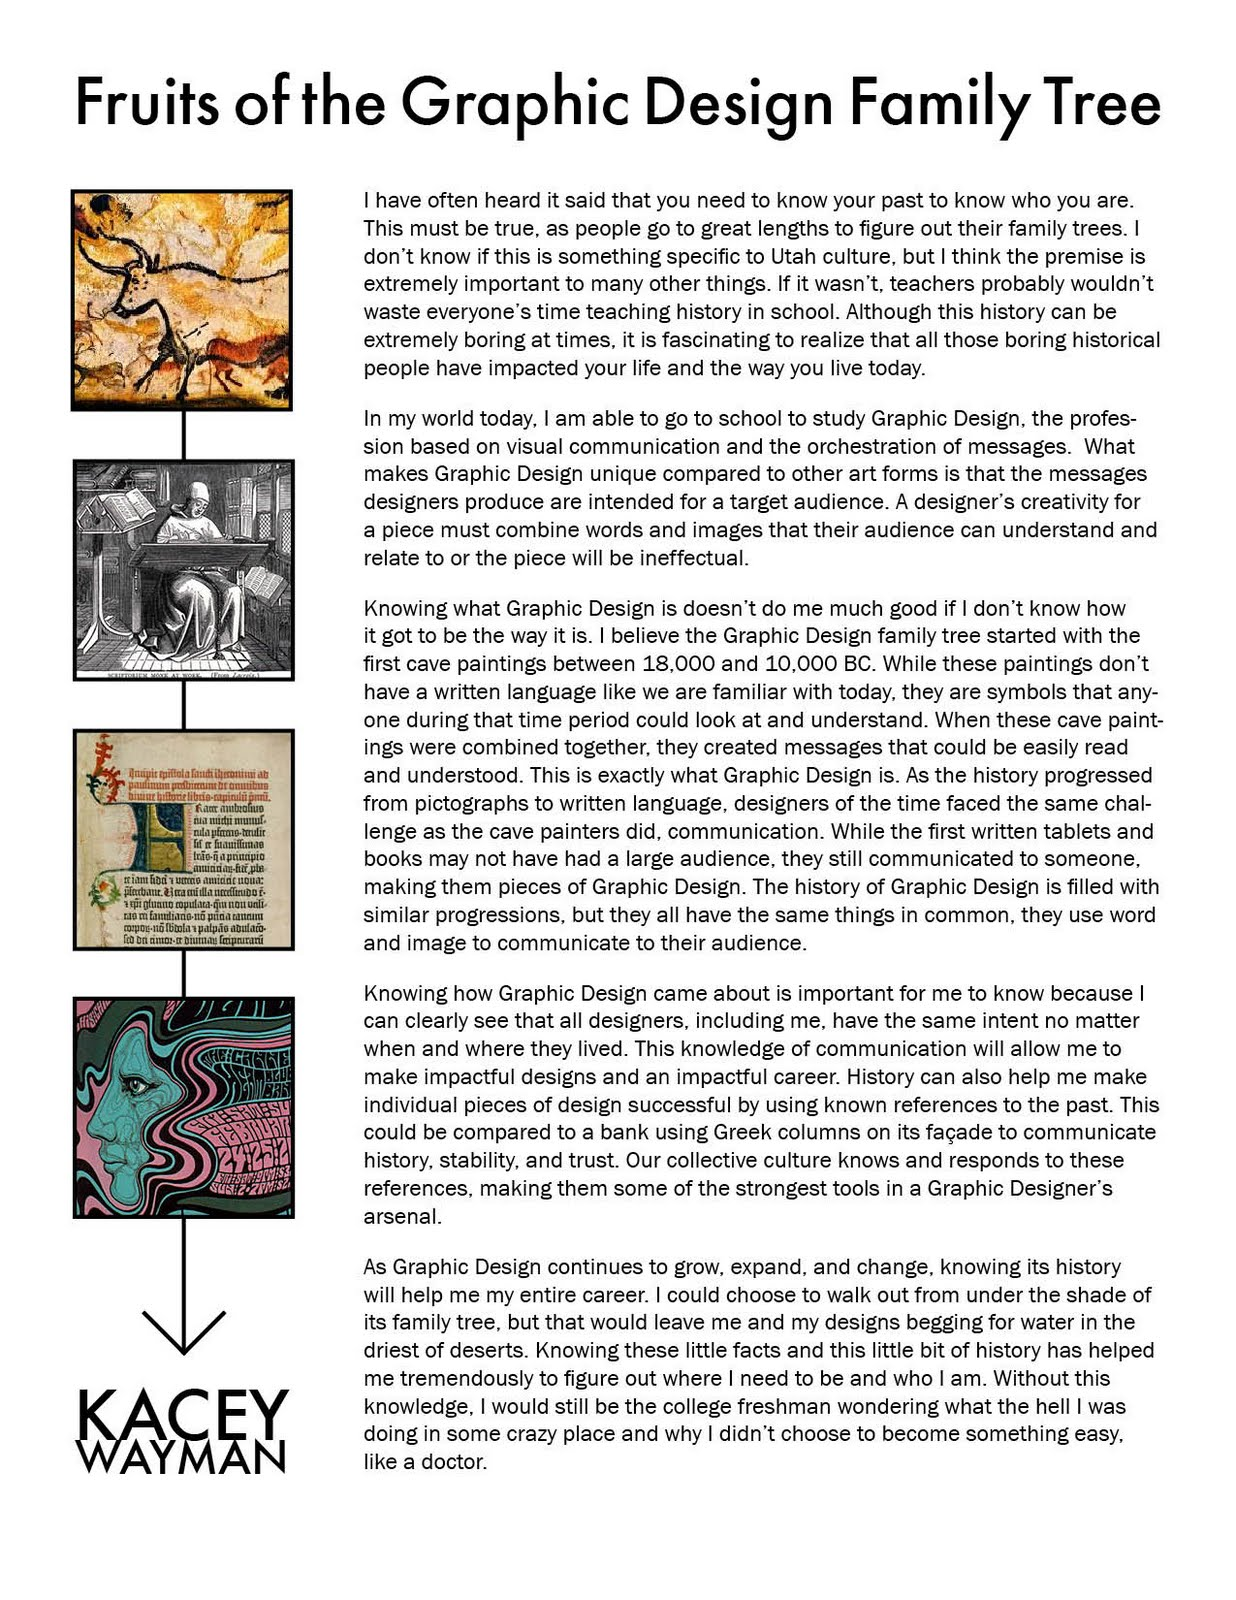 des his f kacey history of design essay essay where we examined the importance of knowing the history of graphic design and how it will help us in our future projects and careers